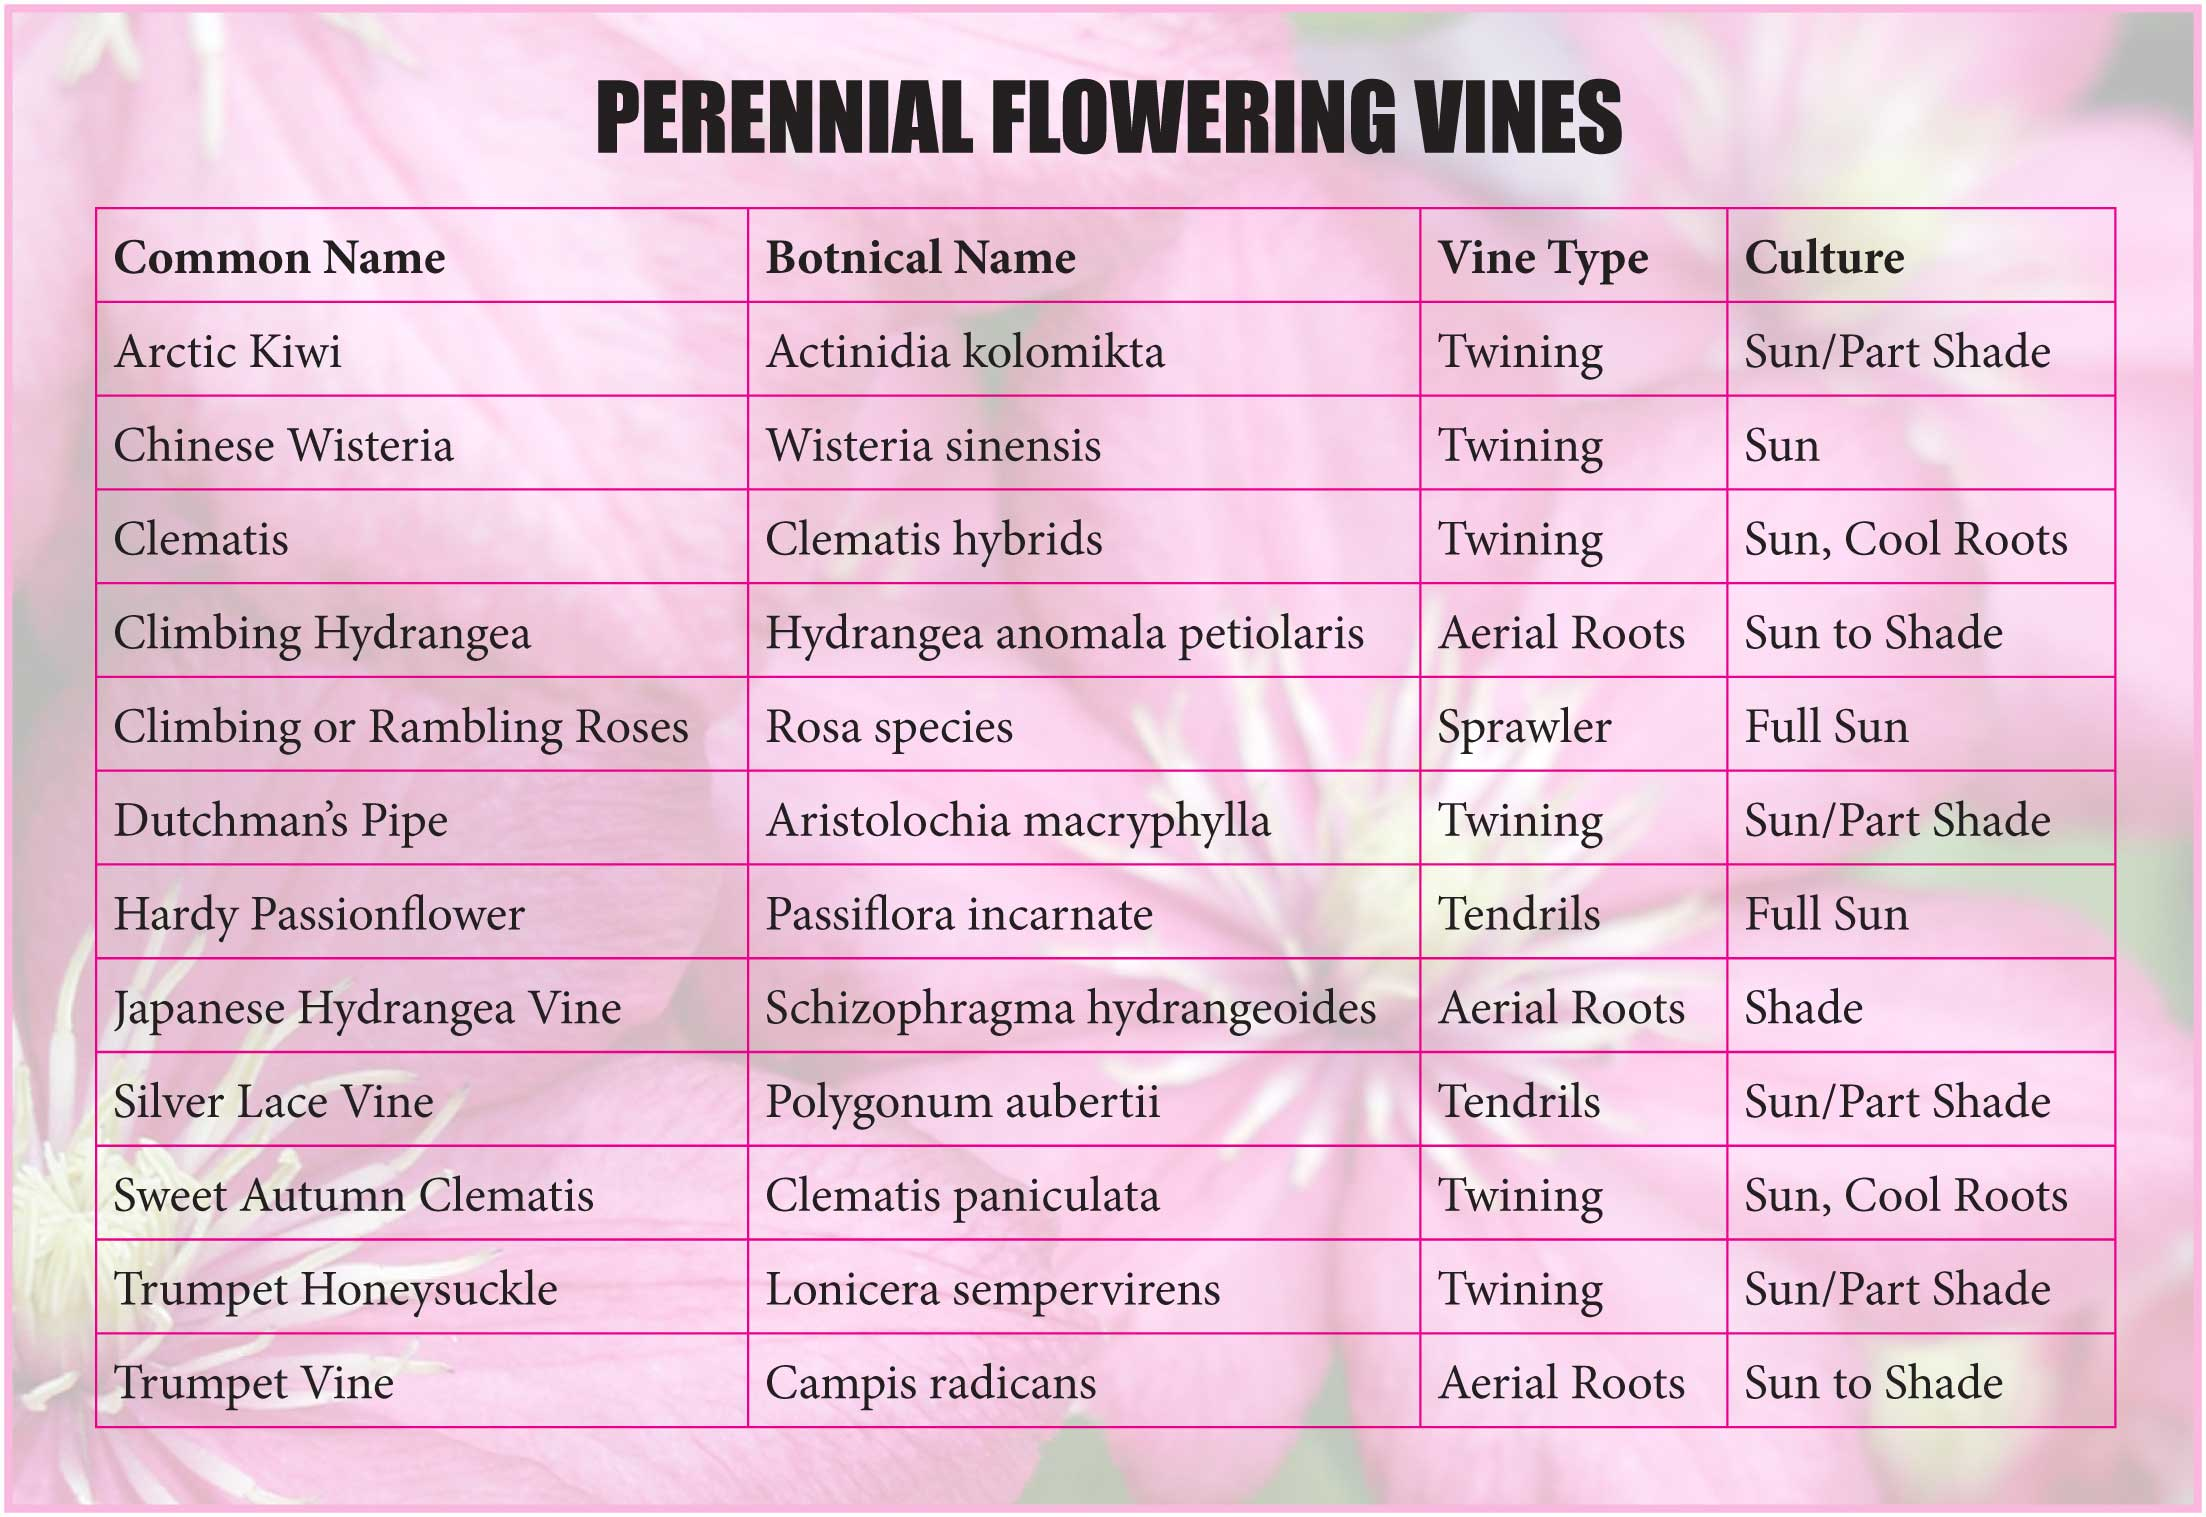 Perennial Flowering Vines Coppolas Garden Center